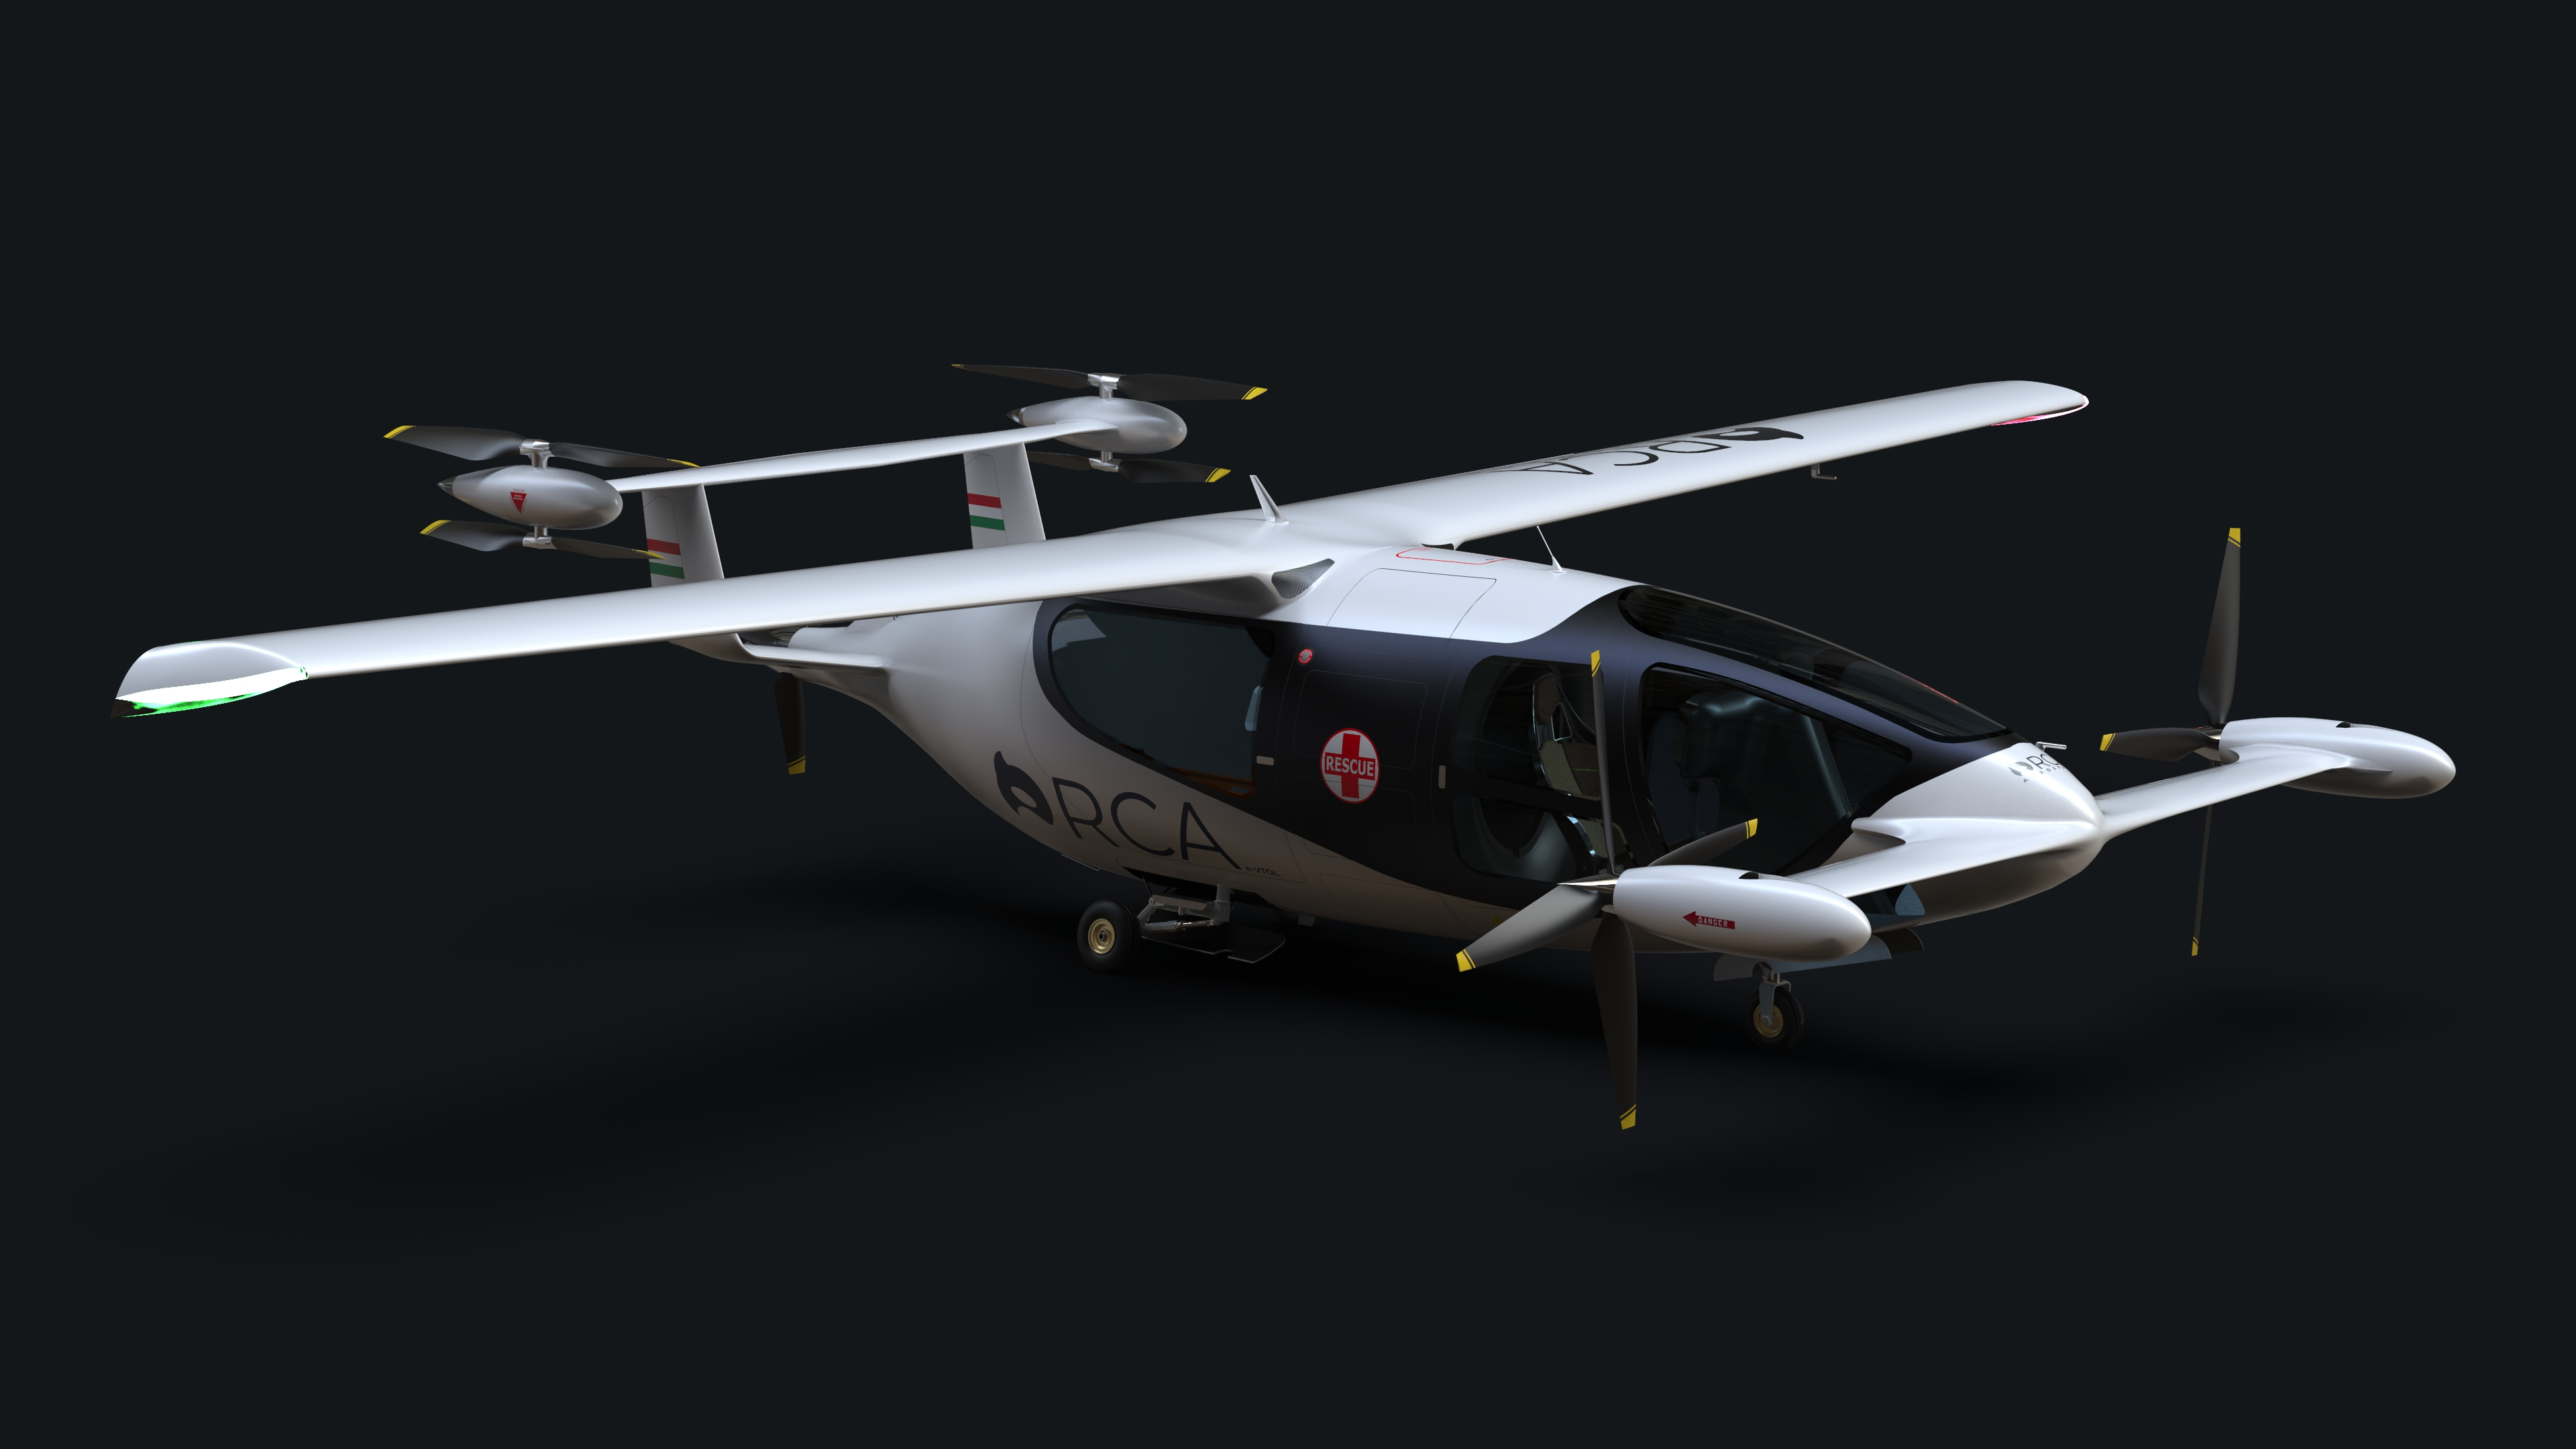 Lobo Leasing and Orca Aerospace sign MOU to develop Orca eVTOL aircraft